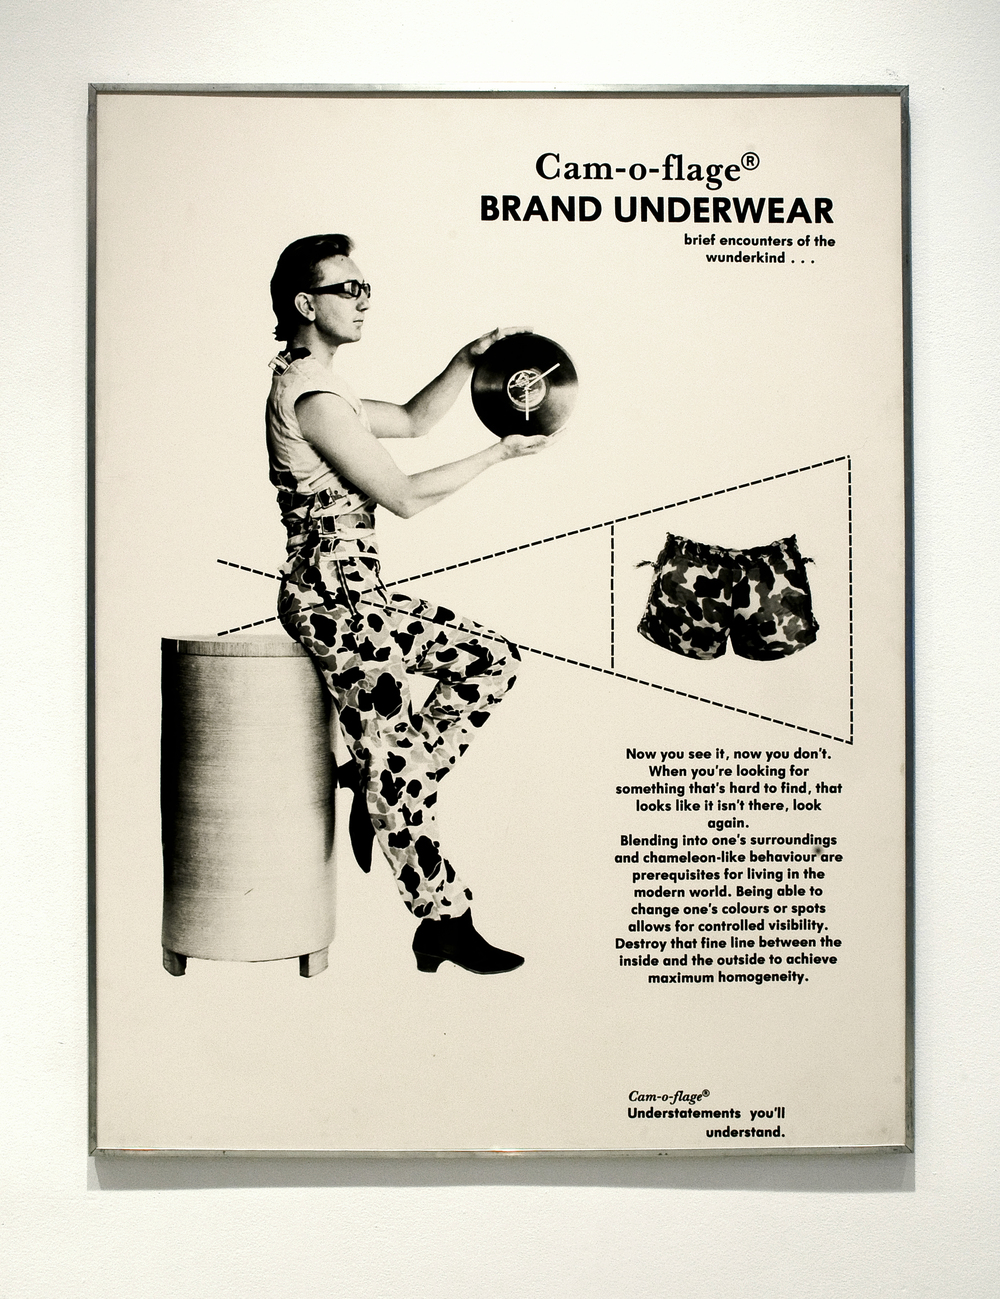 David Buchan, Modern Fashions Suite: Cam-o-flage Brand Underwear, 1977. Collection University of Lethbridge Art Gallery.